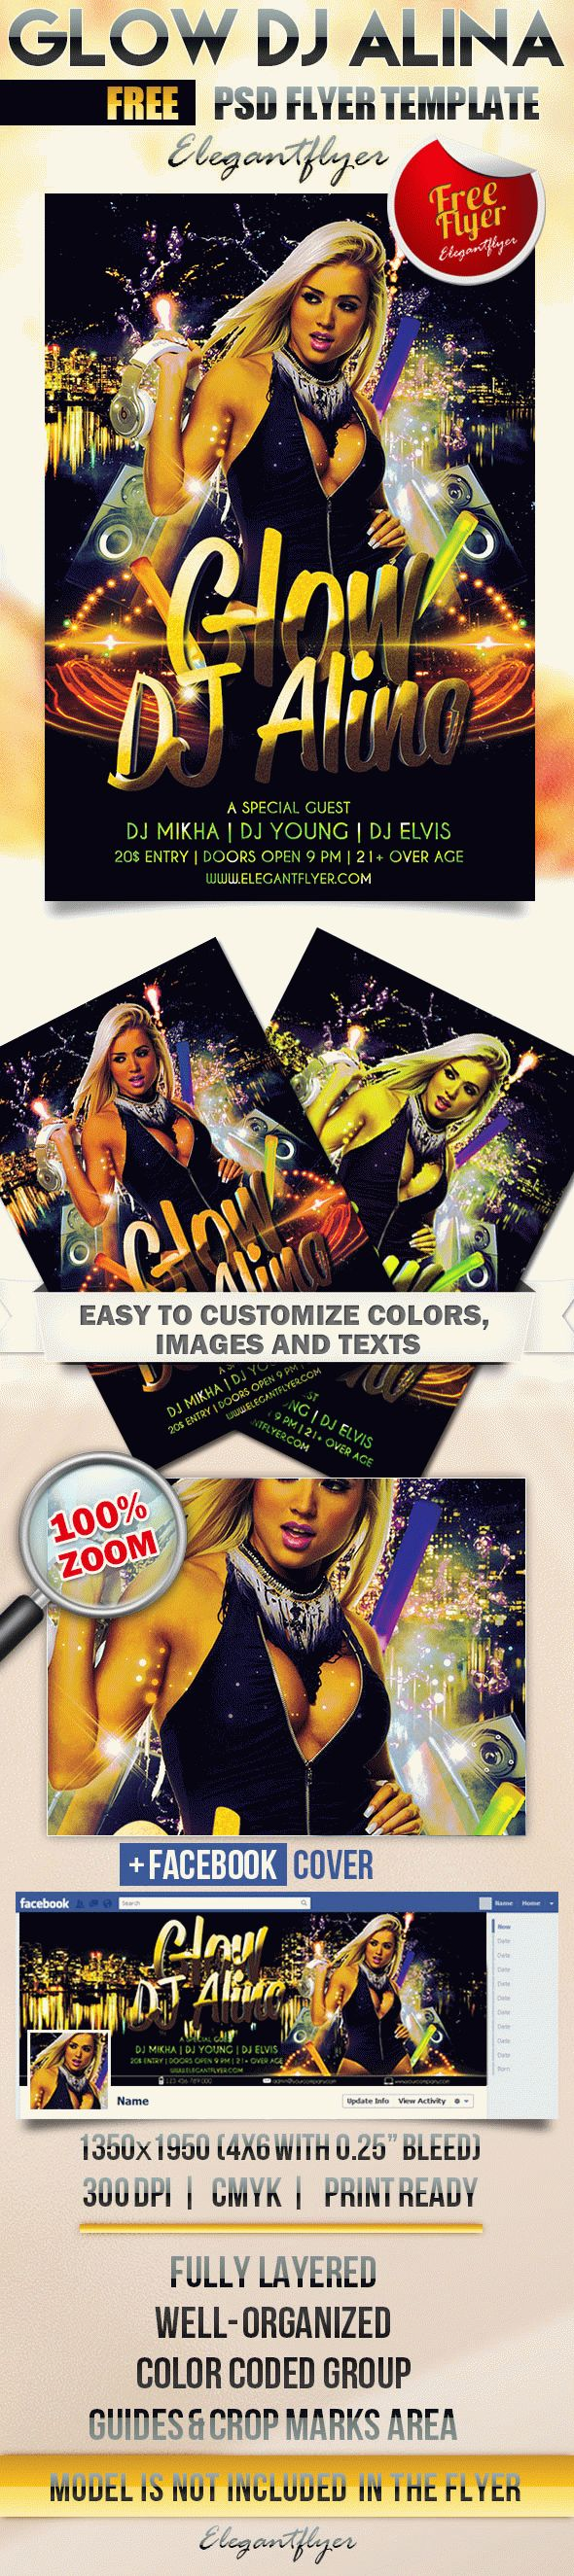 Glow Dj Alina – Free Flyer PSD Template + Facebook Cover